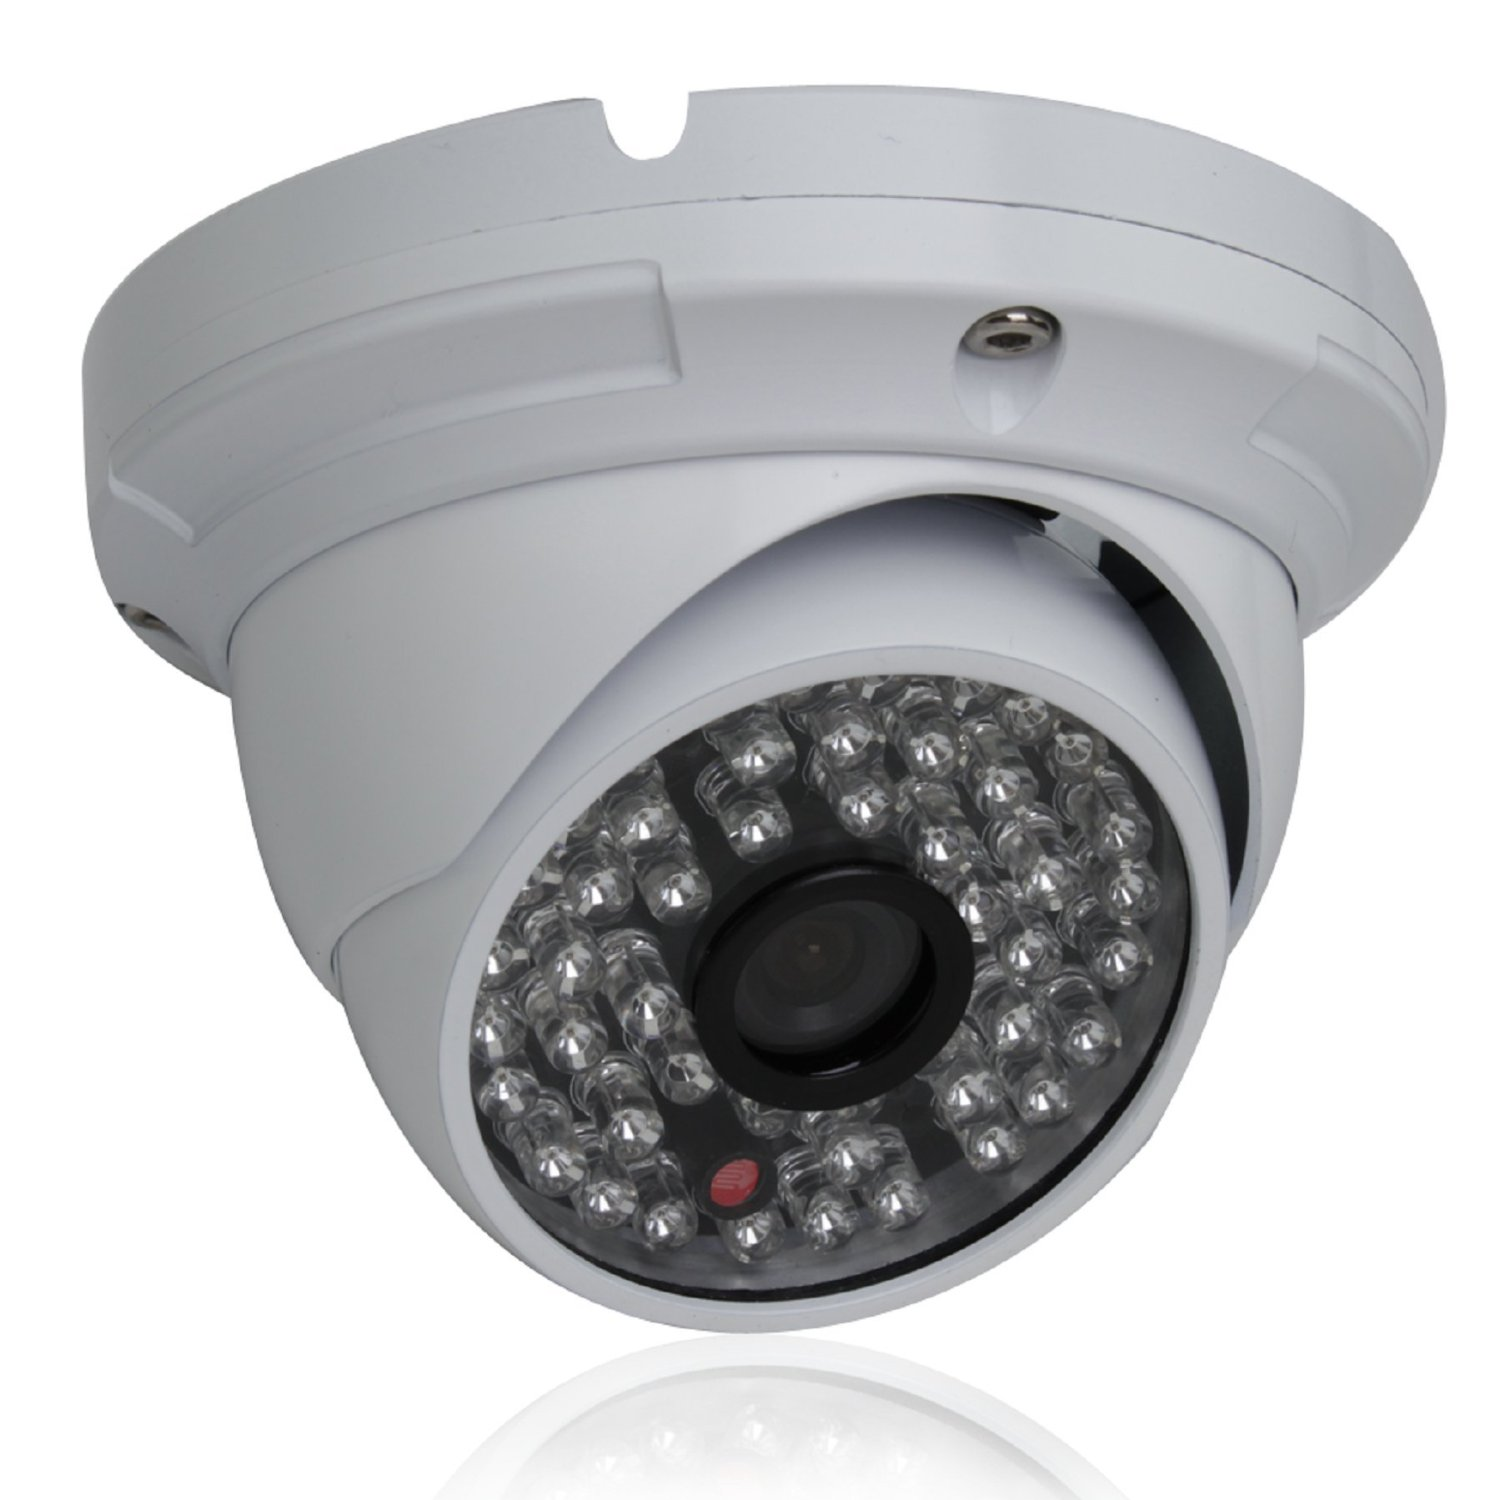 ANRAN HD Video Security